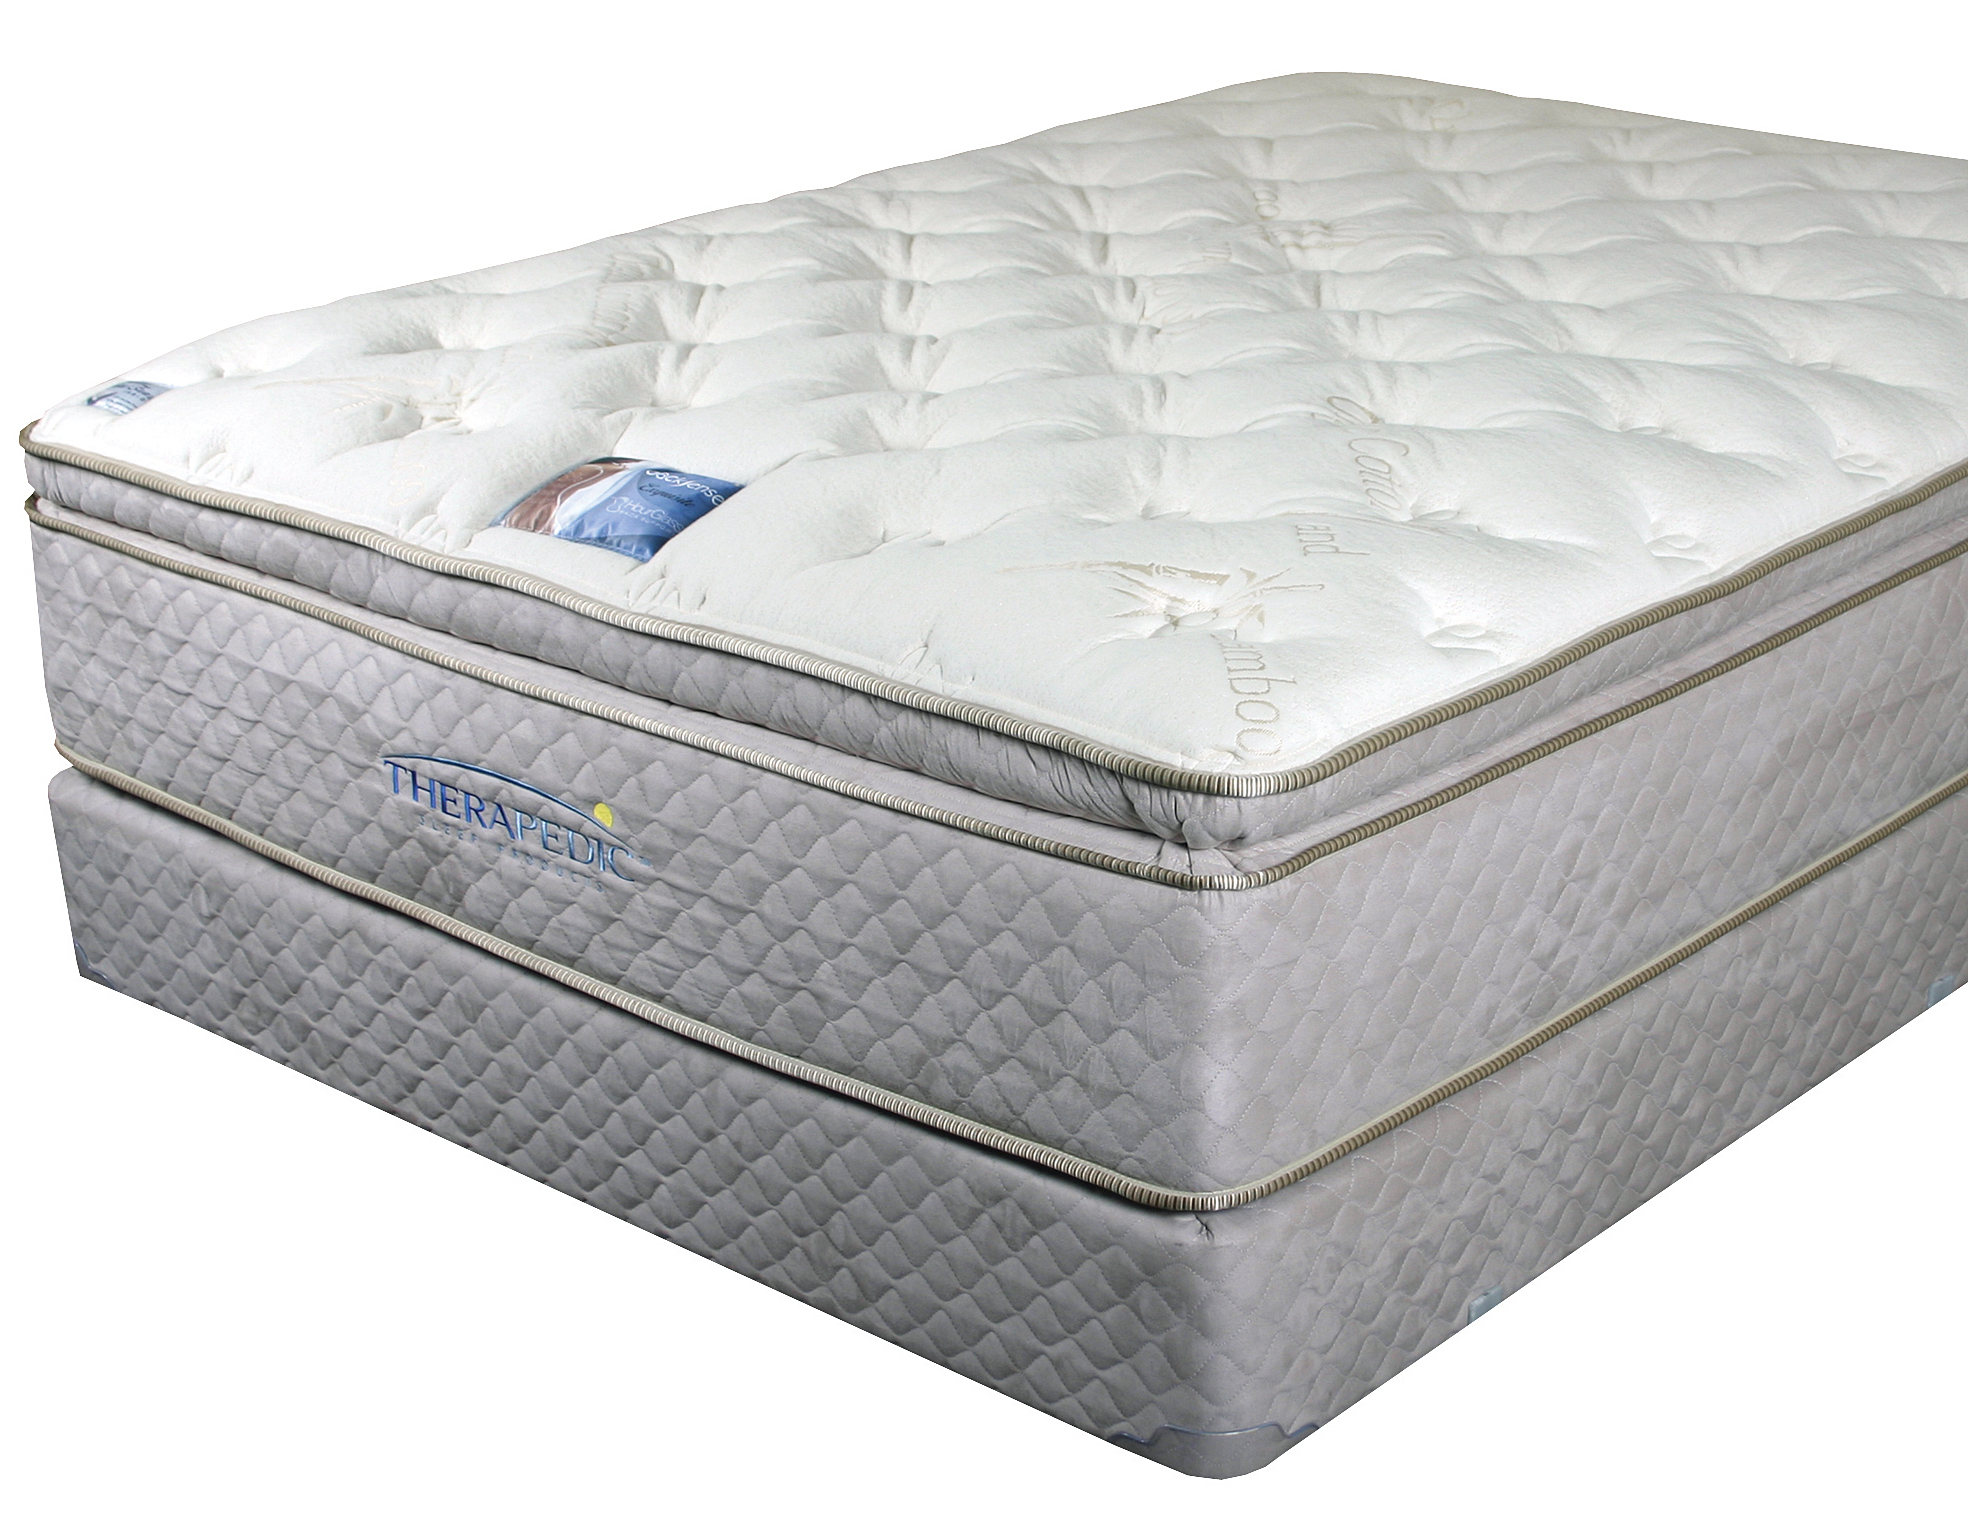 Therapedic Backsense Elite Plush Latex Pillow Top Mattresses